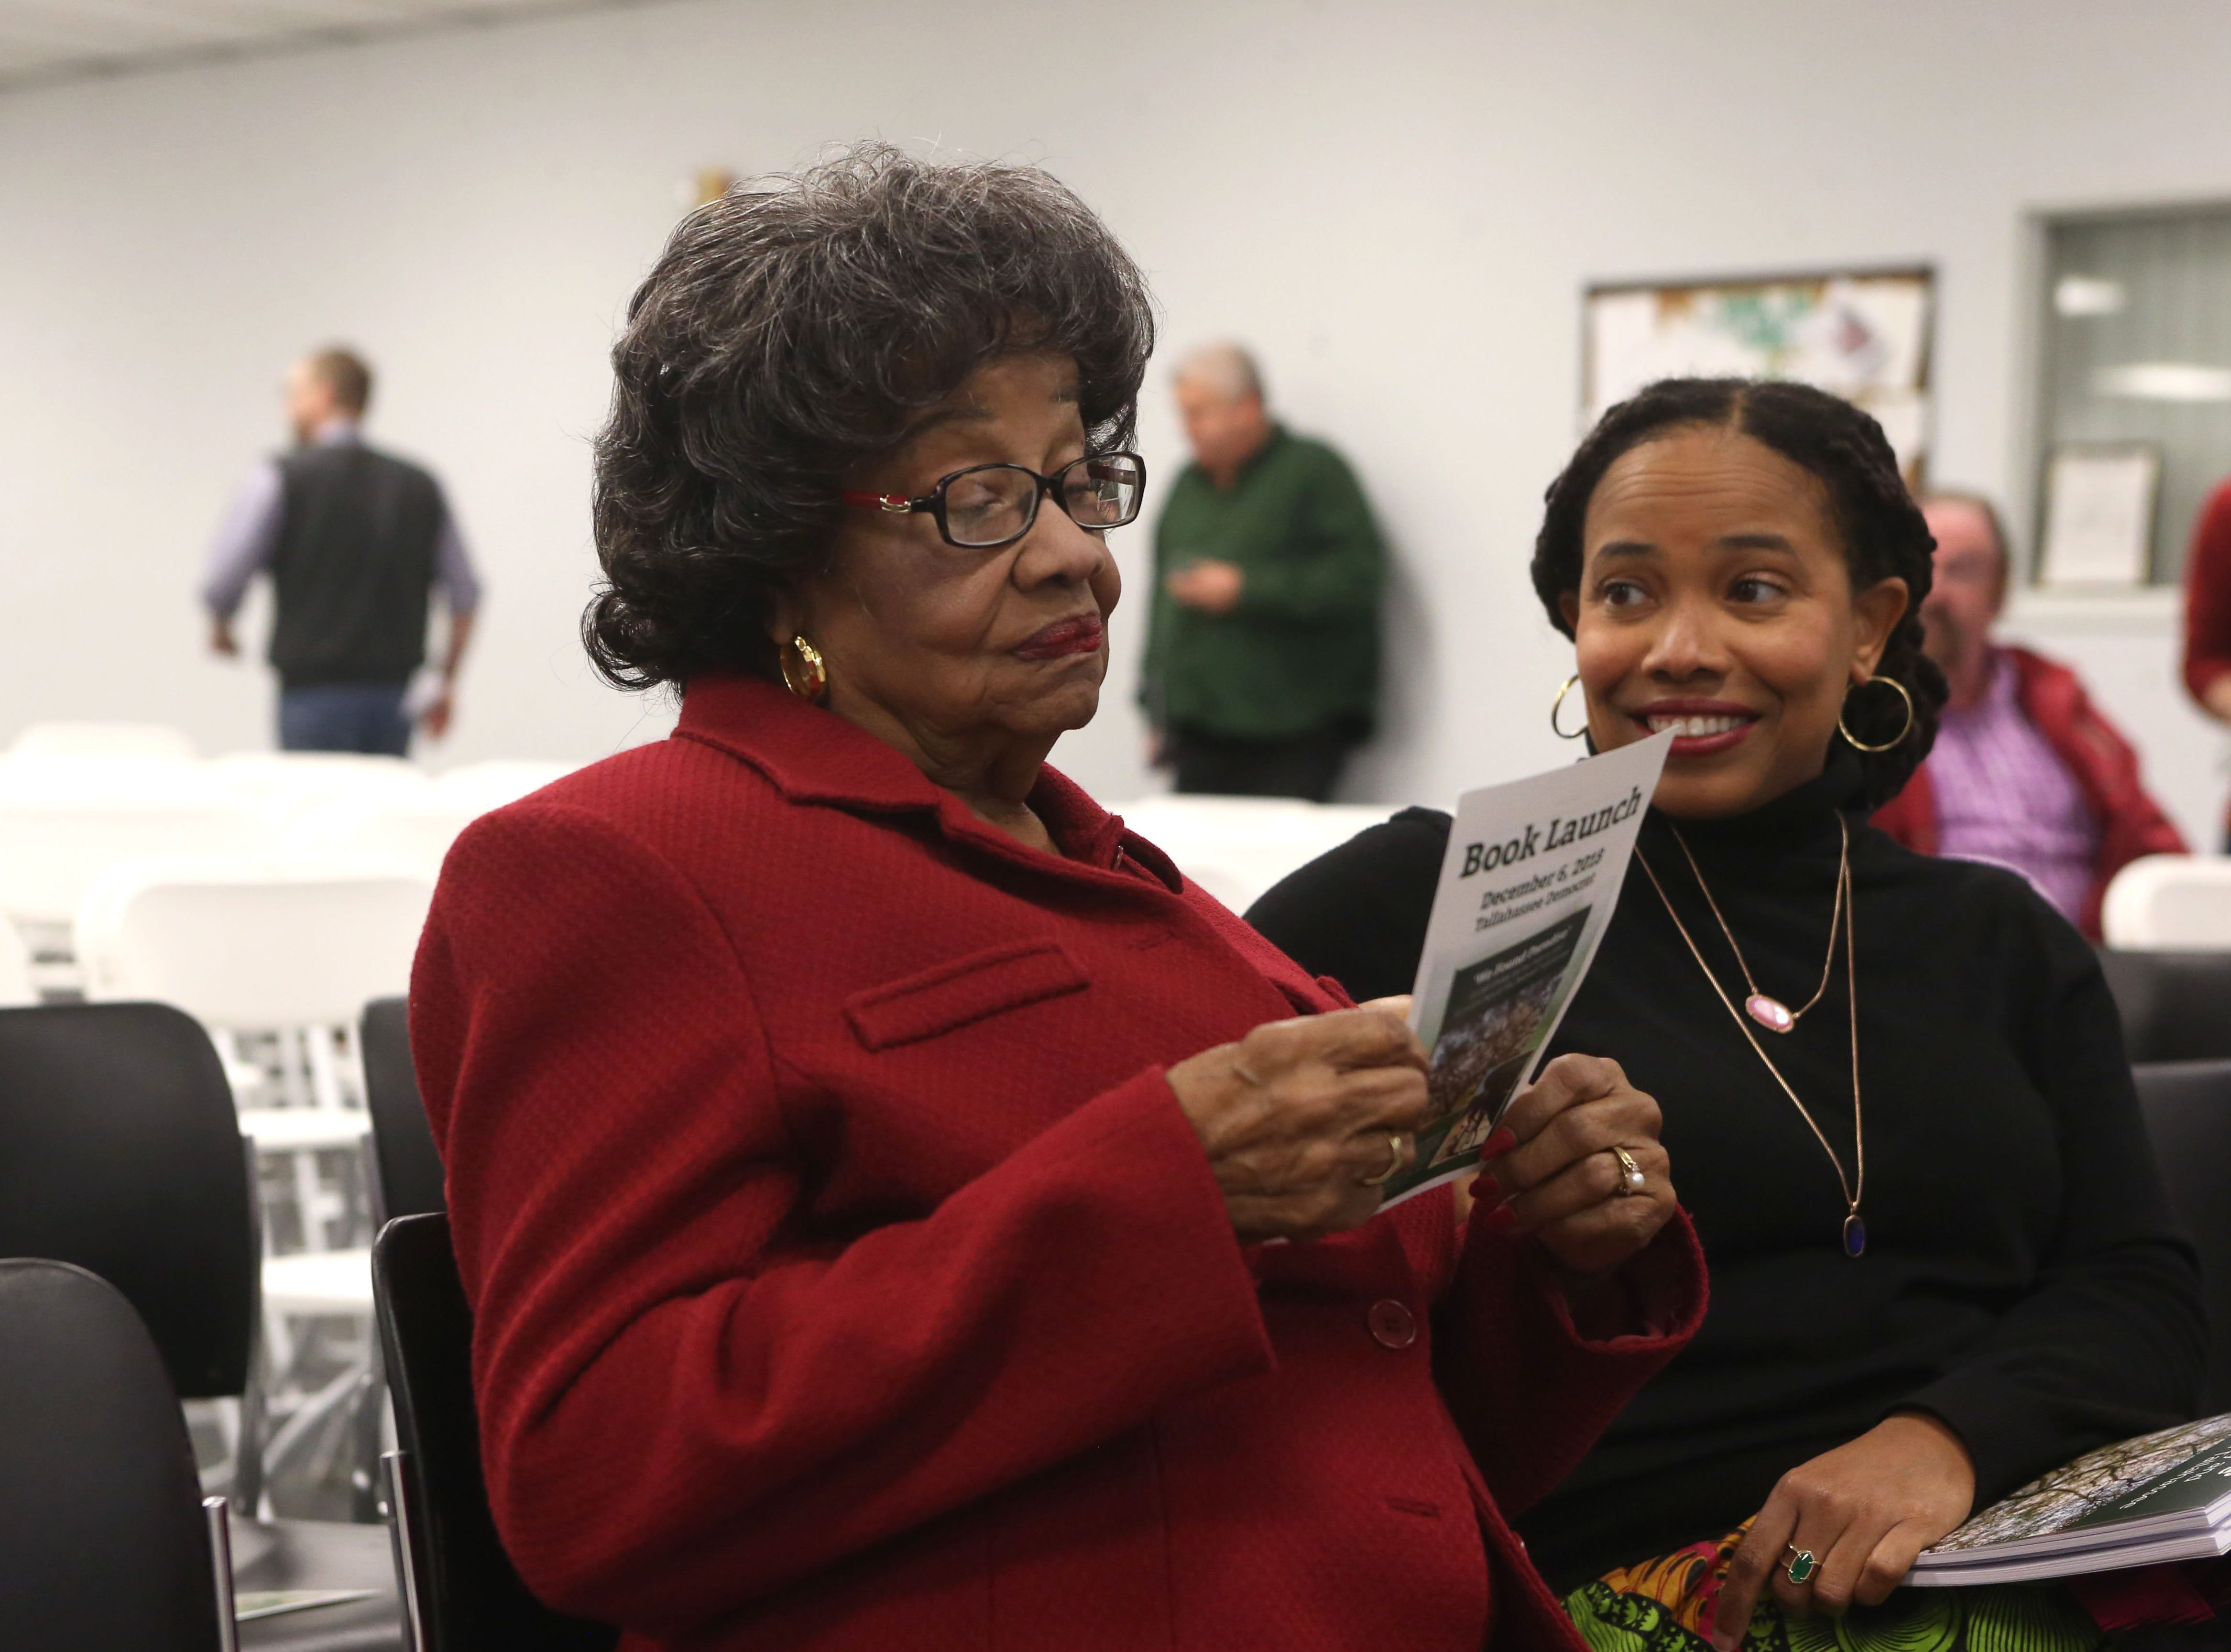 Lucille Alexander, retired professor at the Florida State University College of Nursing, left, and daughter, Aurelia Alexander, professor at FAMU School of Allied Health Sciences, at a launch party held at the Tallahassee Democrat for Gerald Ensley's book, 'We Found Paradise,' Thursday, Dec. 6, 2018.